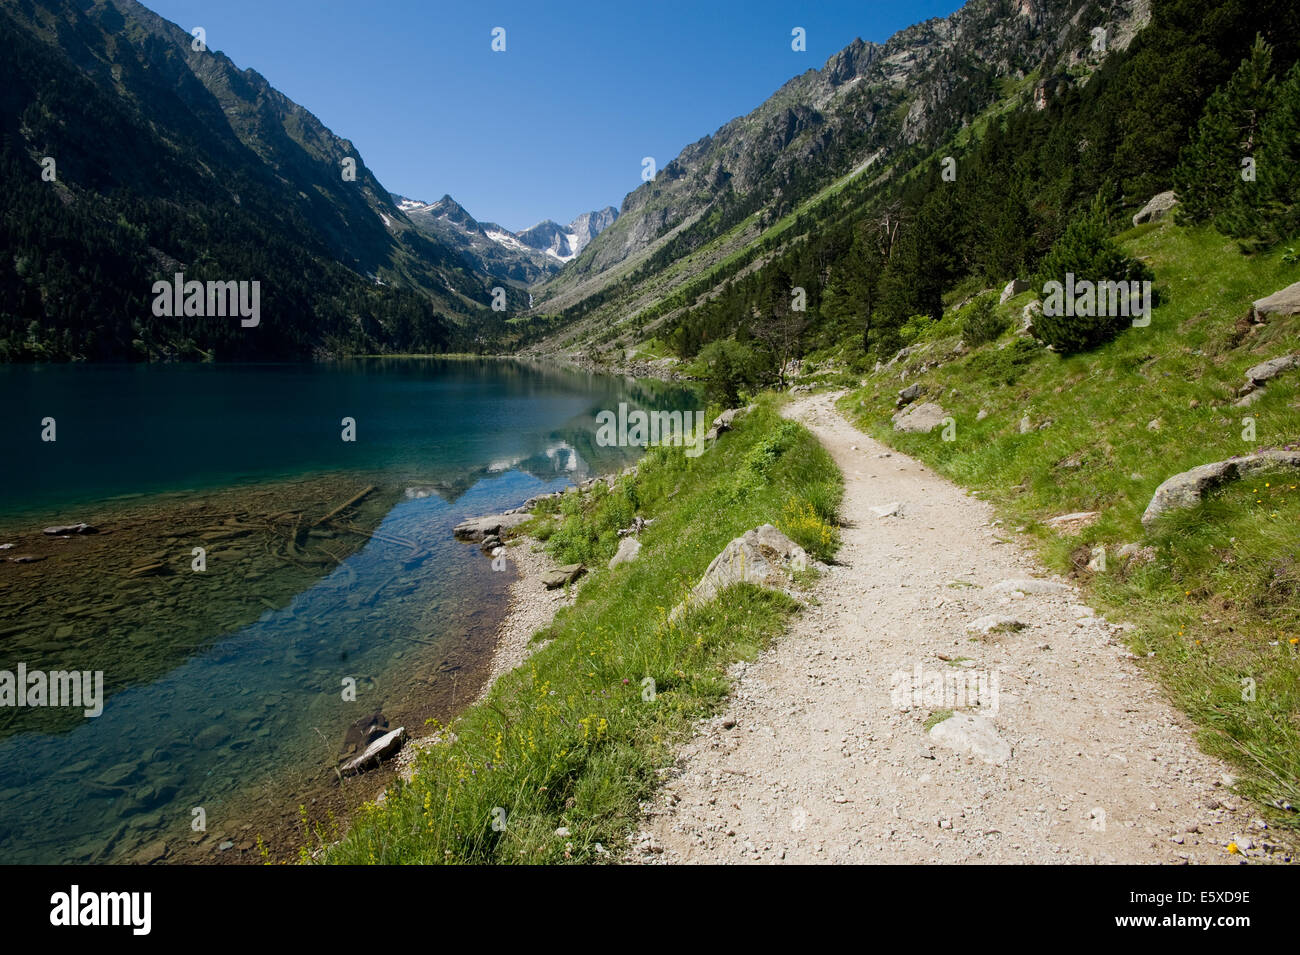 Trail next to lake, Lac de Gabe, in the valley of Gave de Gaube, Cauterets, France. - Stock Image